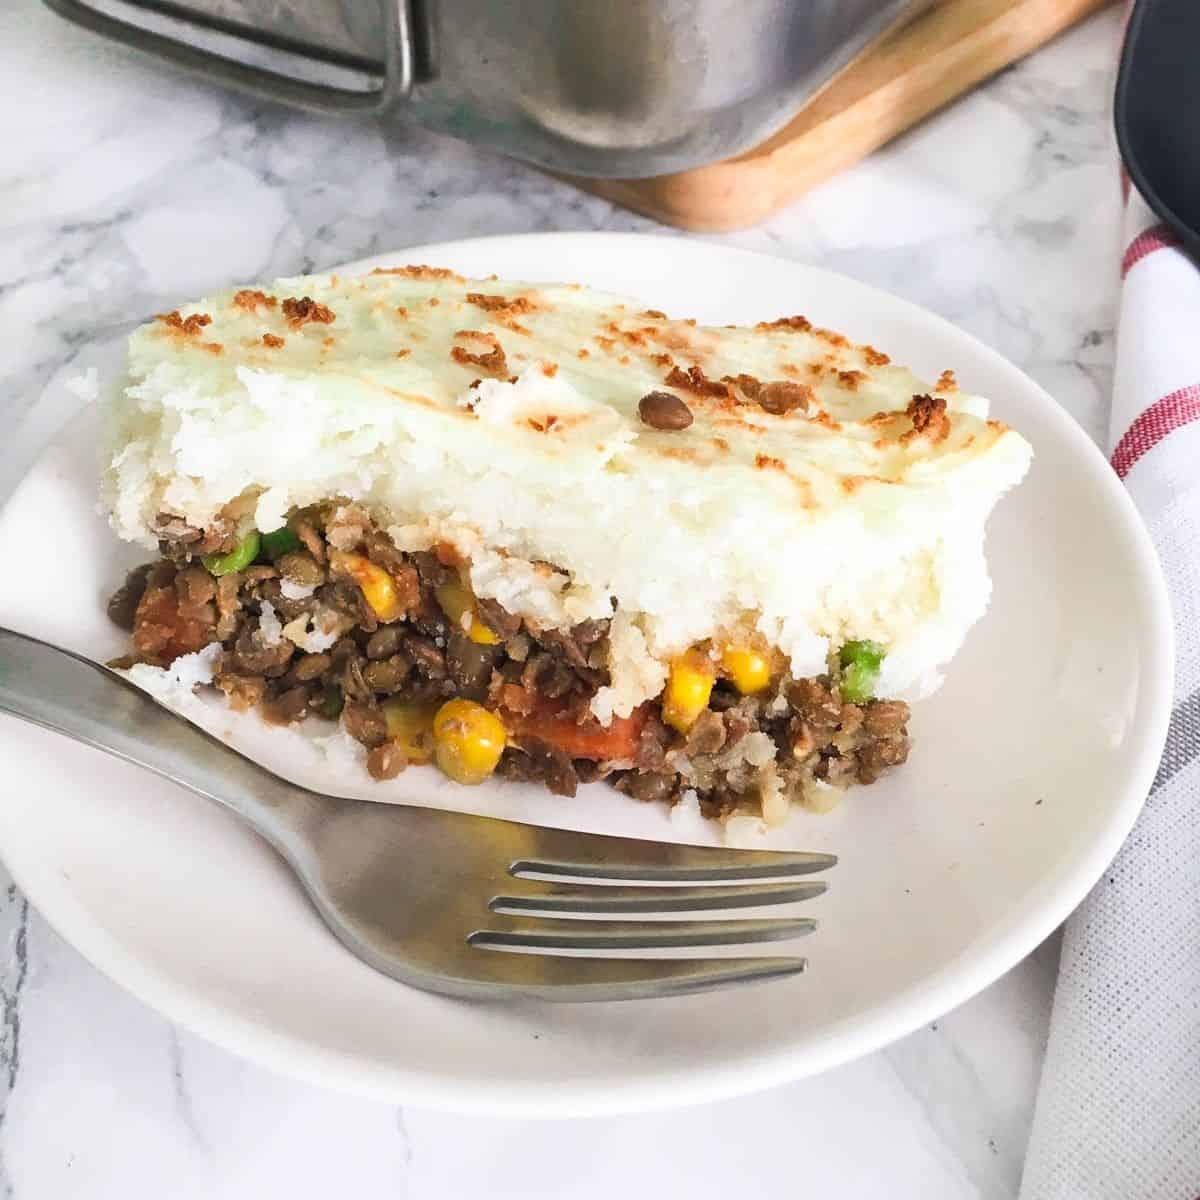 slice of lentil shepherd's pie in plate with fork.